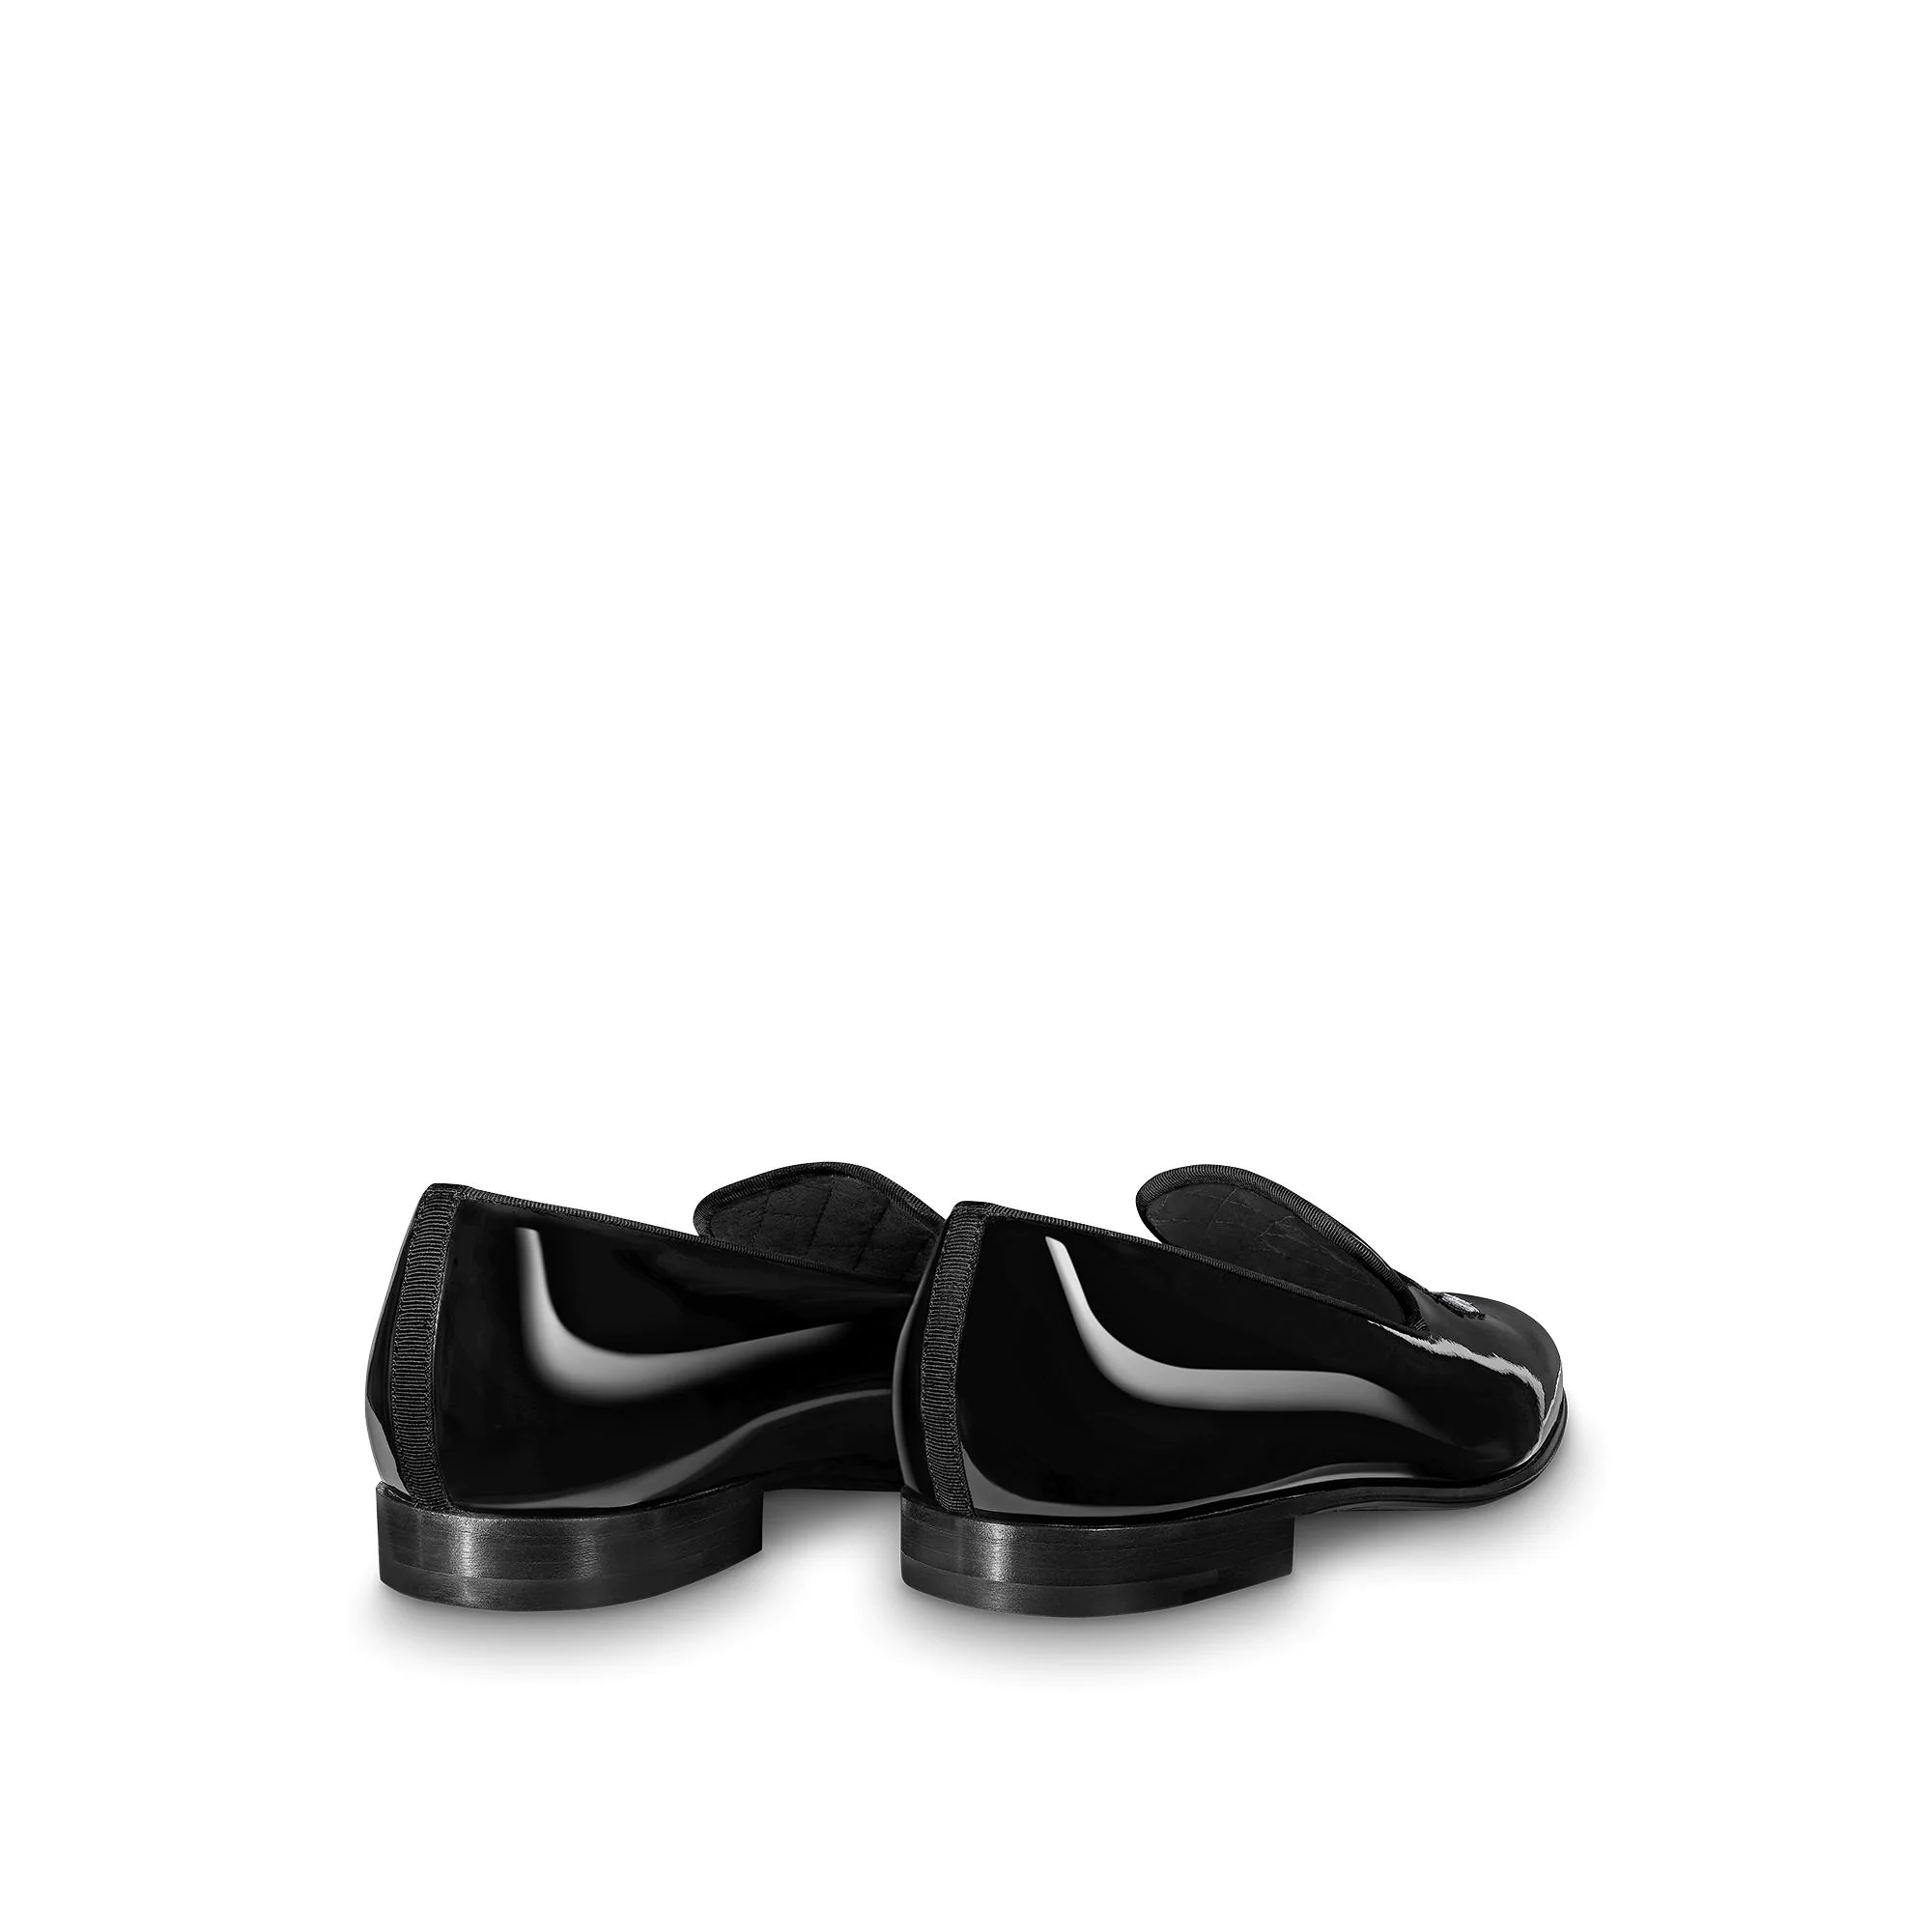 유럽직배송 루이비통 LOUIS VUITTON Auteuil Slippers 1A5WL9